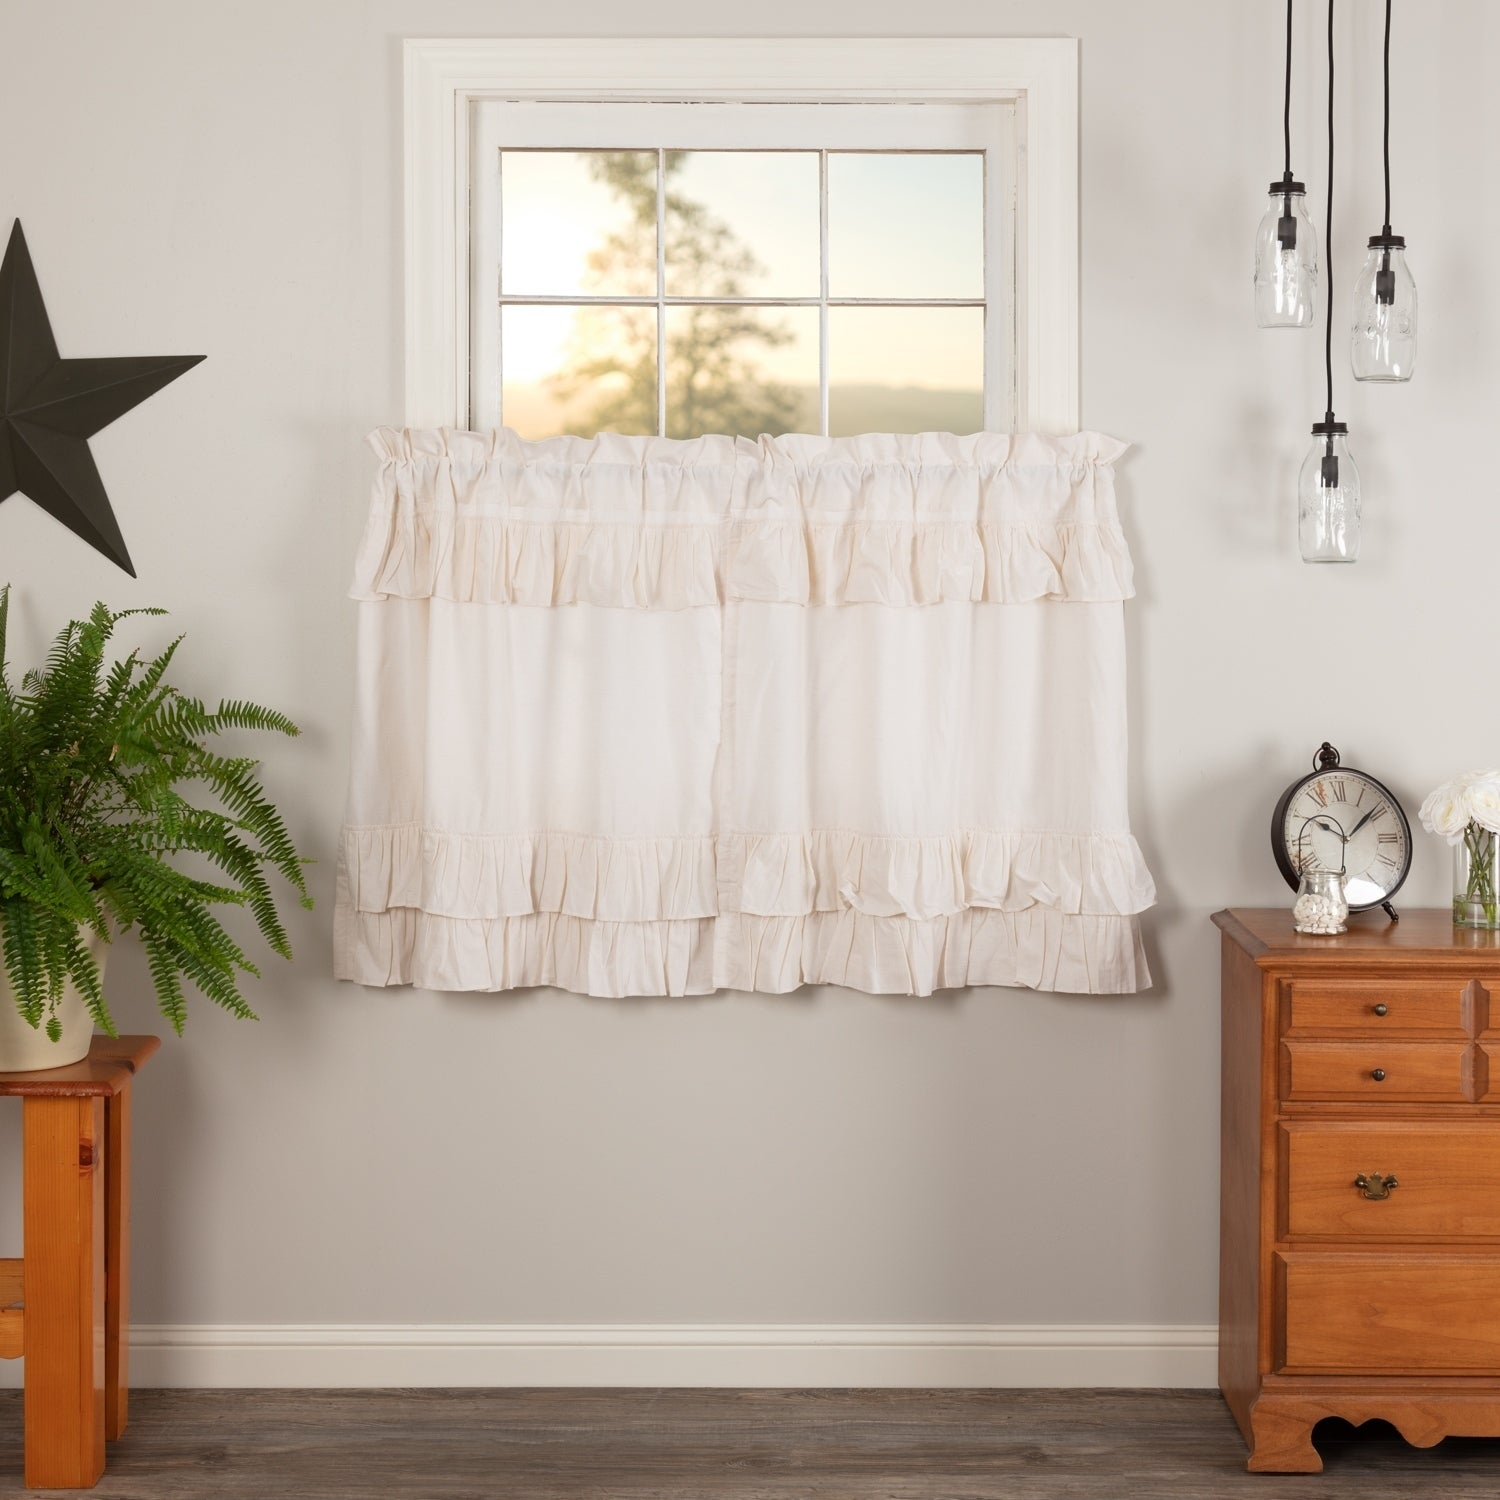 Farmhouse Kitchen Curtains Vhc Simple Life Flax Tier Pair Rod Pocket Cotton Linen Blend Solid Color Flax With Regard To Simple Life Flax Tier Pairs (View 11 of 20)